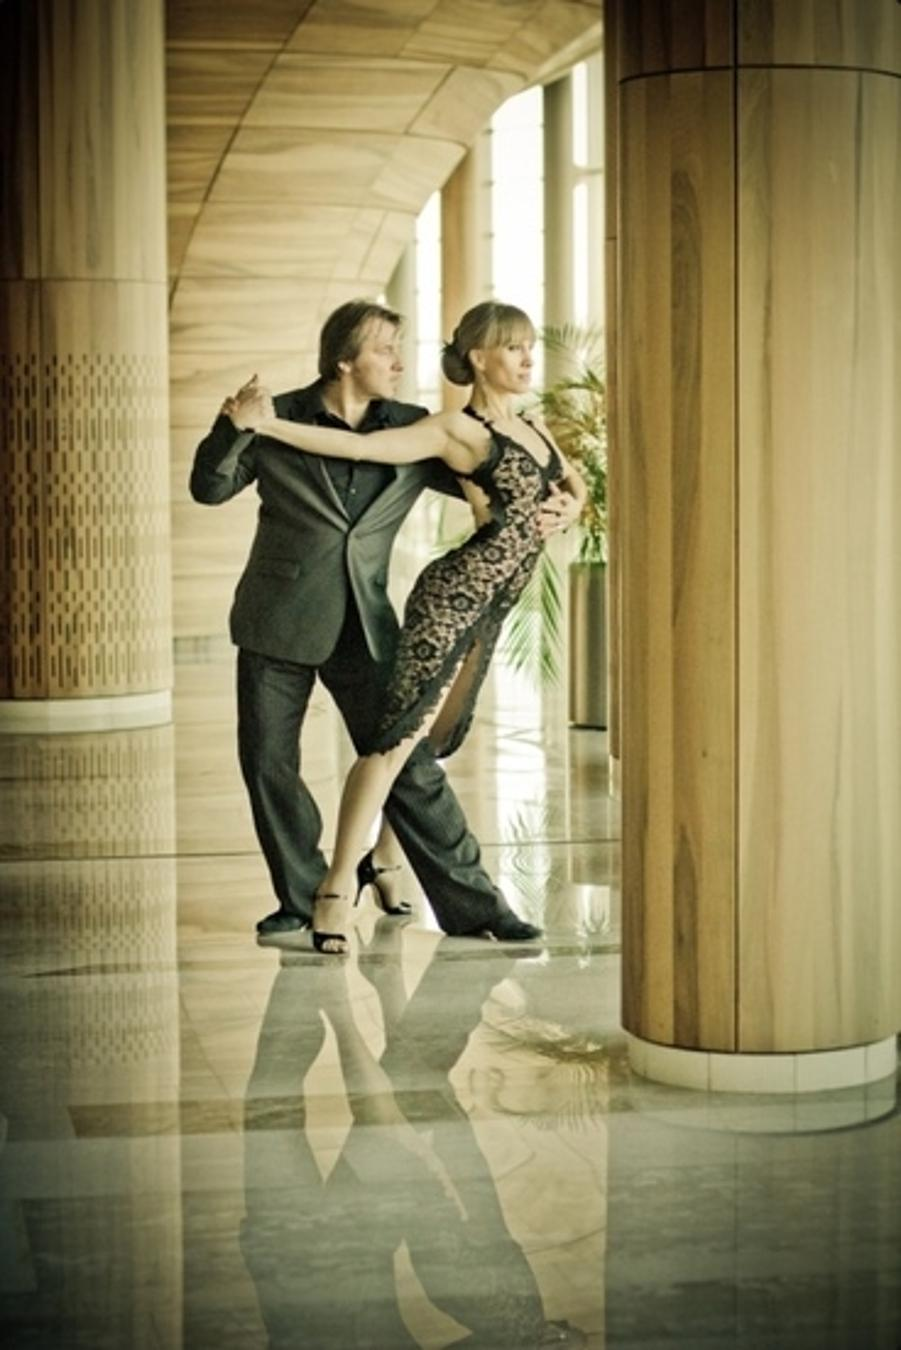 Invitation: 'Tango No Tango', Festival Theatre Budapest, 14 February